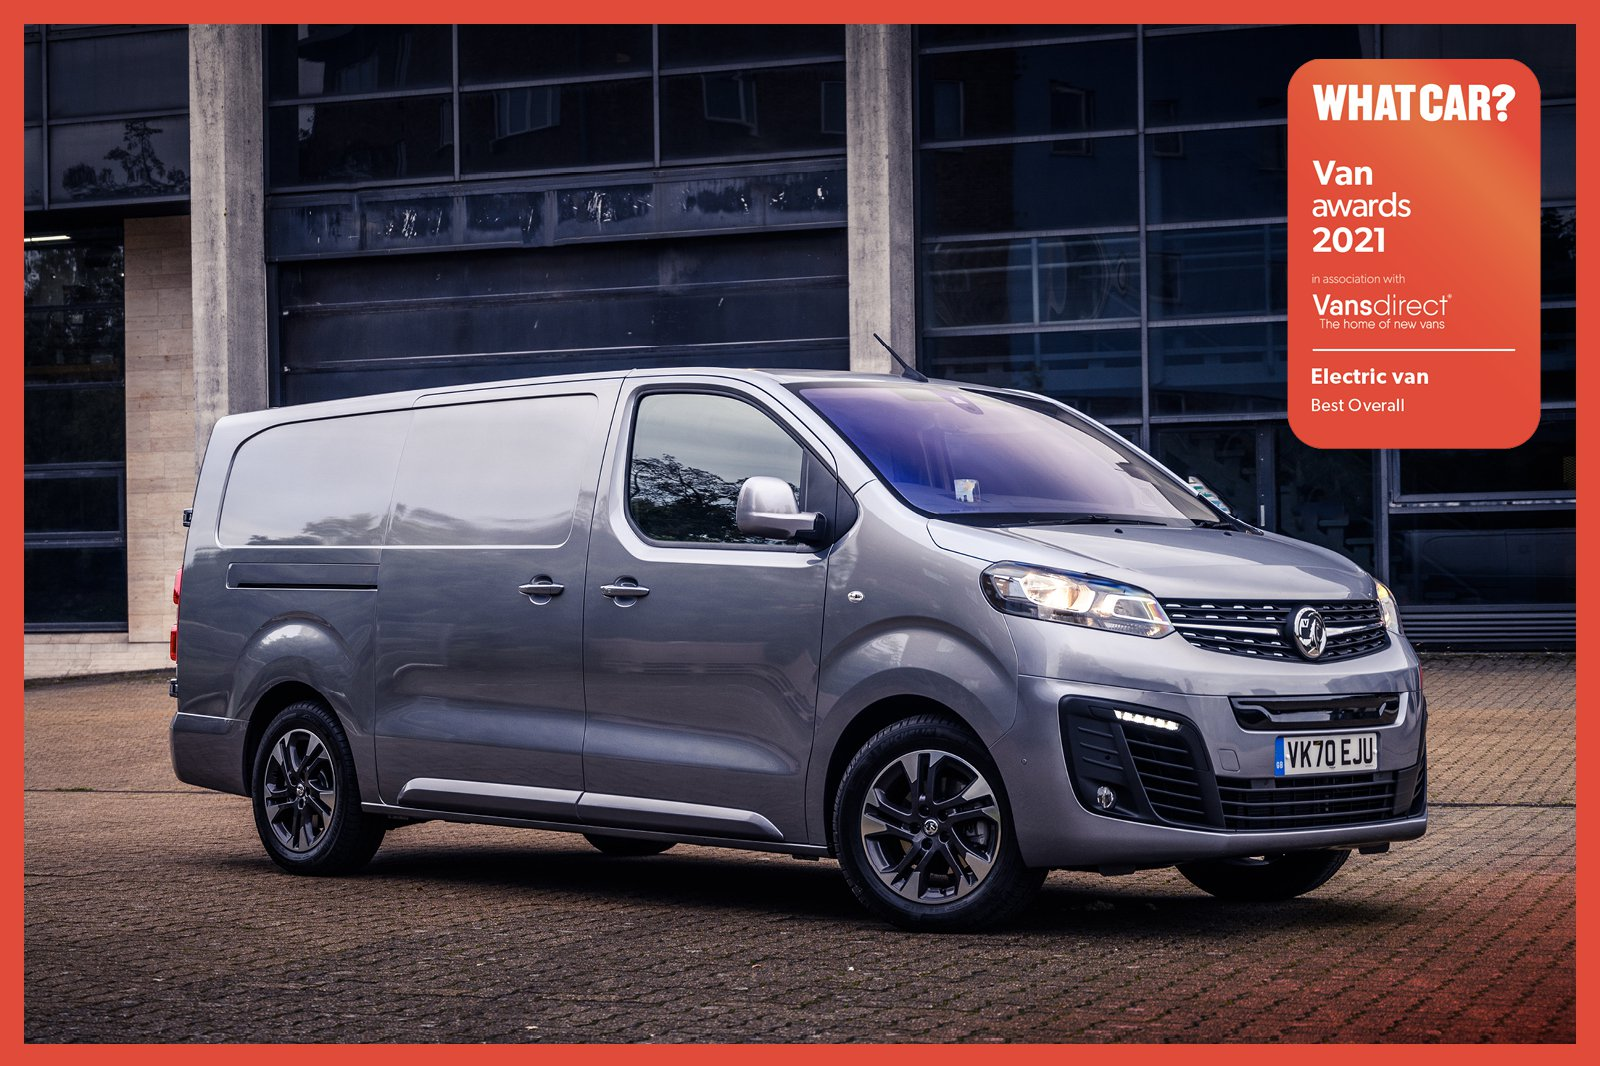 Van Awards 2021 - Best Electric Van (new logo)